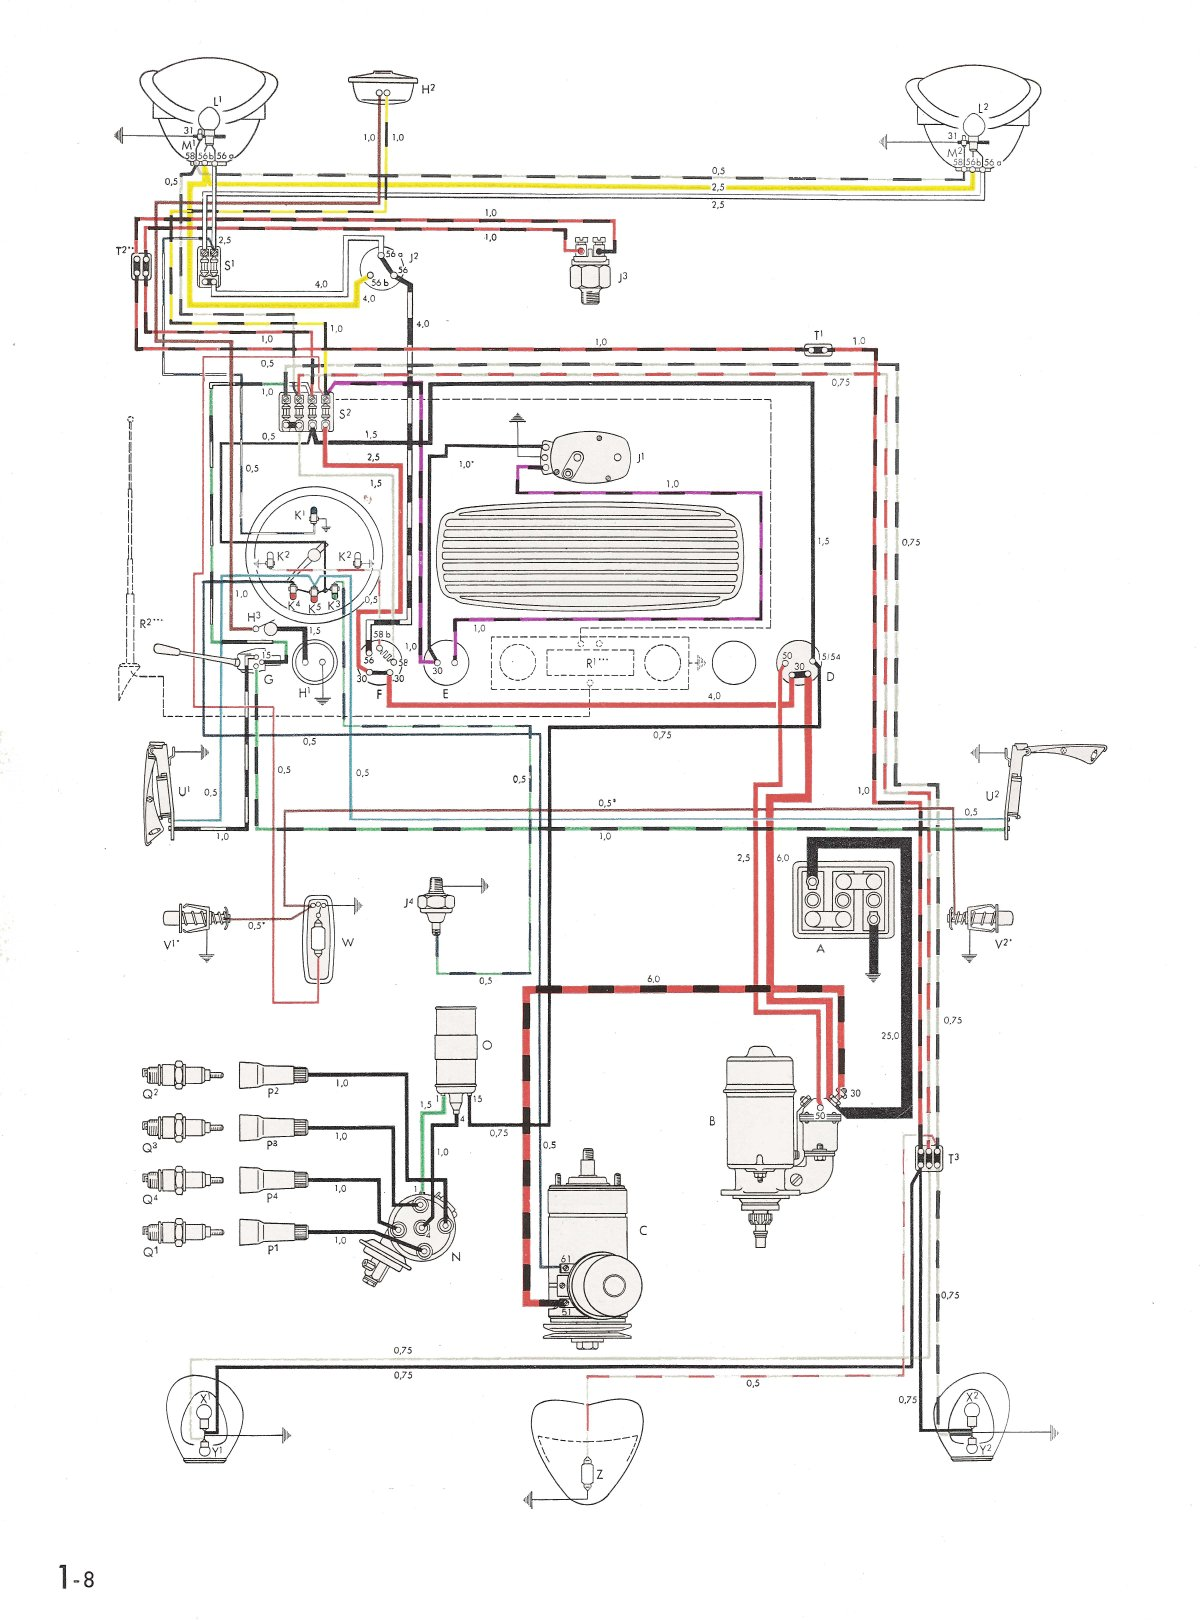 Beetle Alternator Wiring Diagram 74 F100 58 Vw Simple Diagramthesamba Com Type 1 Diagrams One Wire